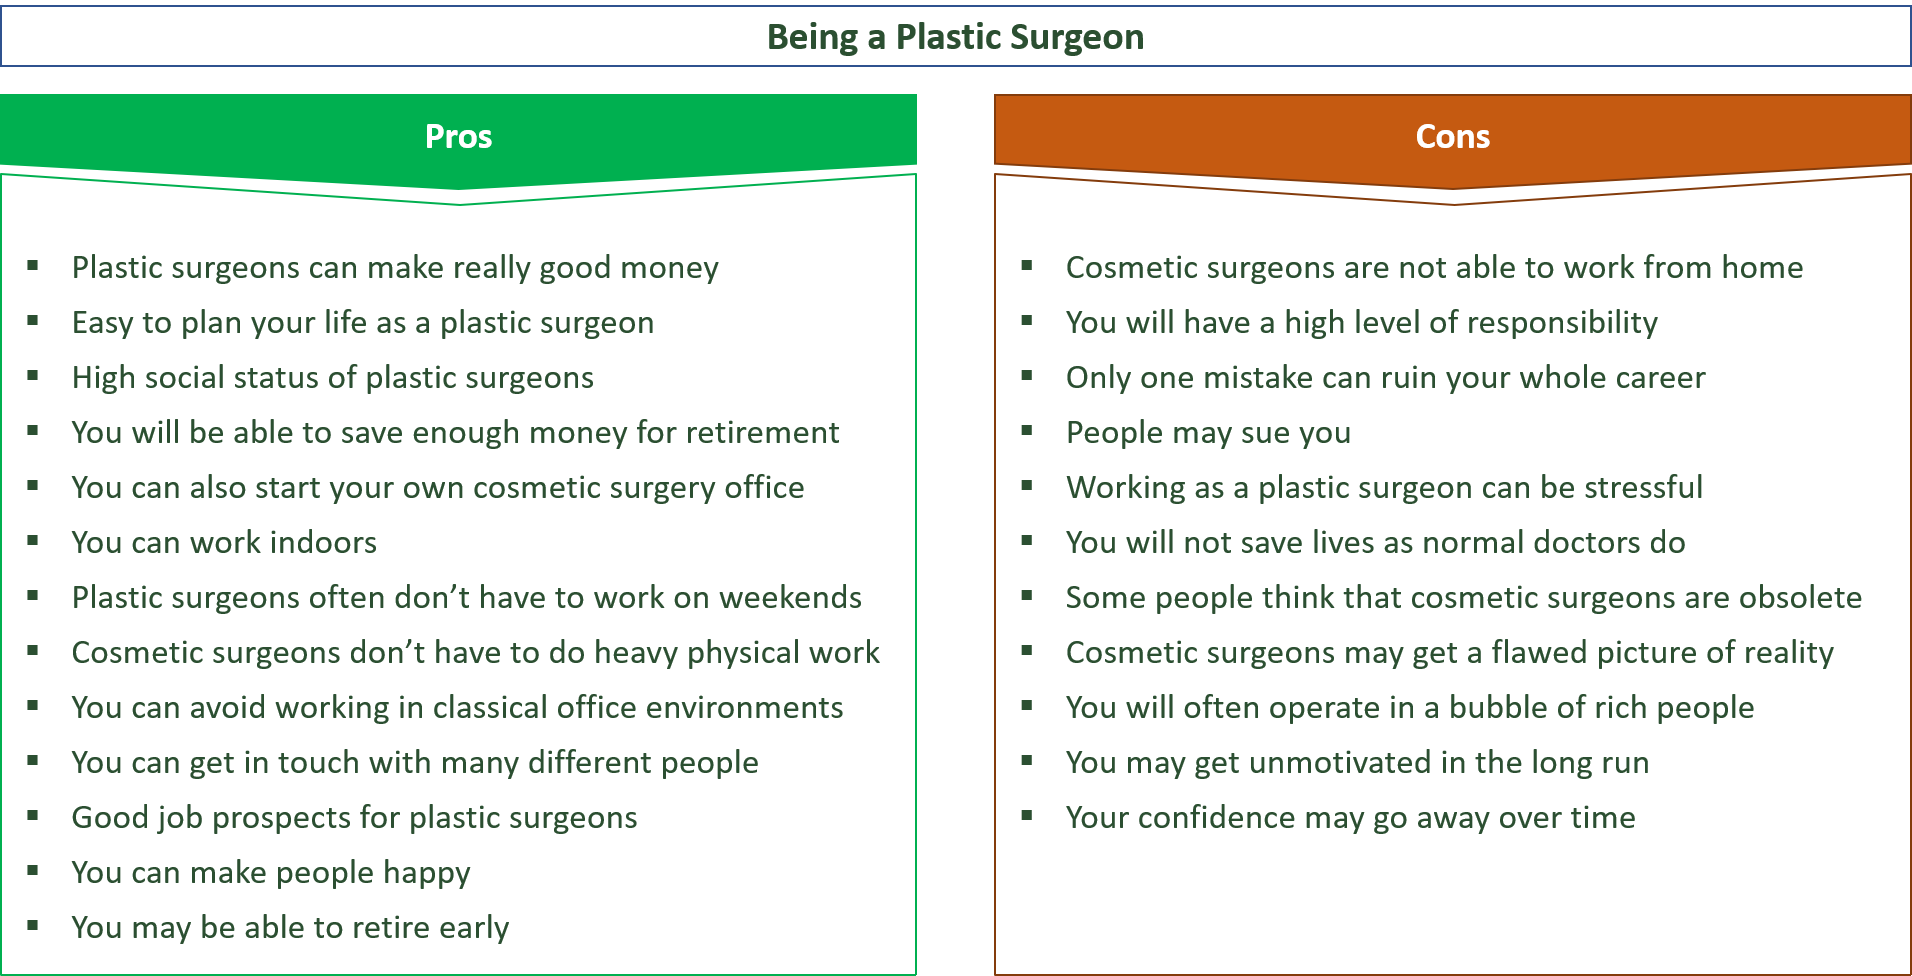 advantages and disadvantages of being a plastic surgeon